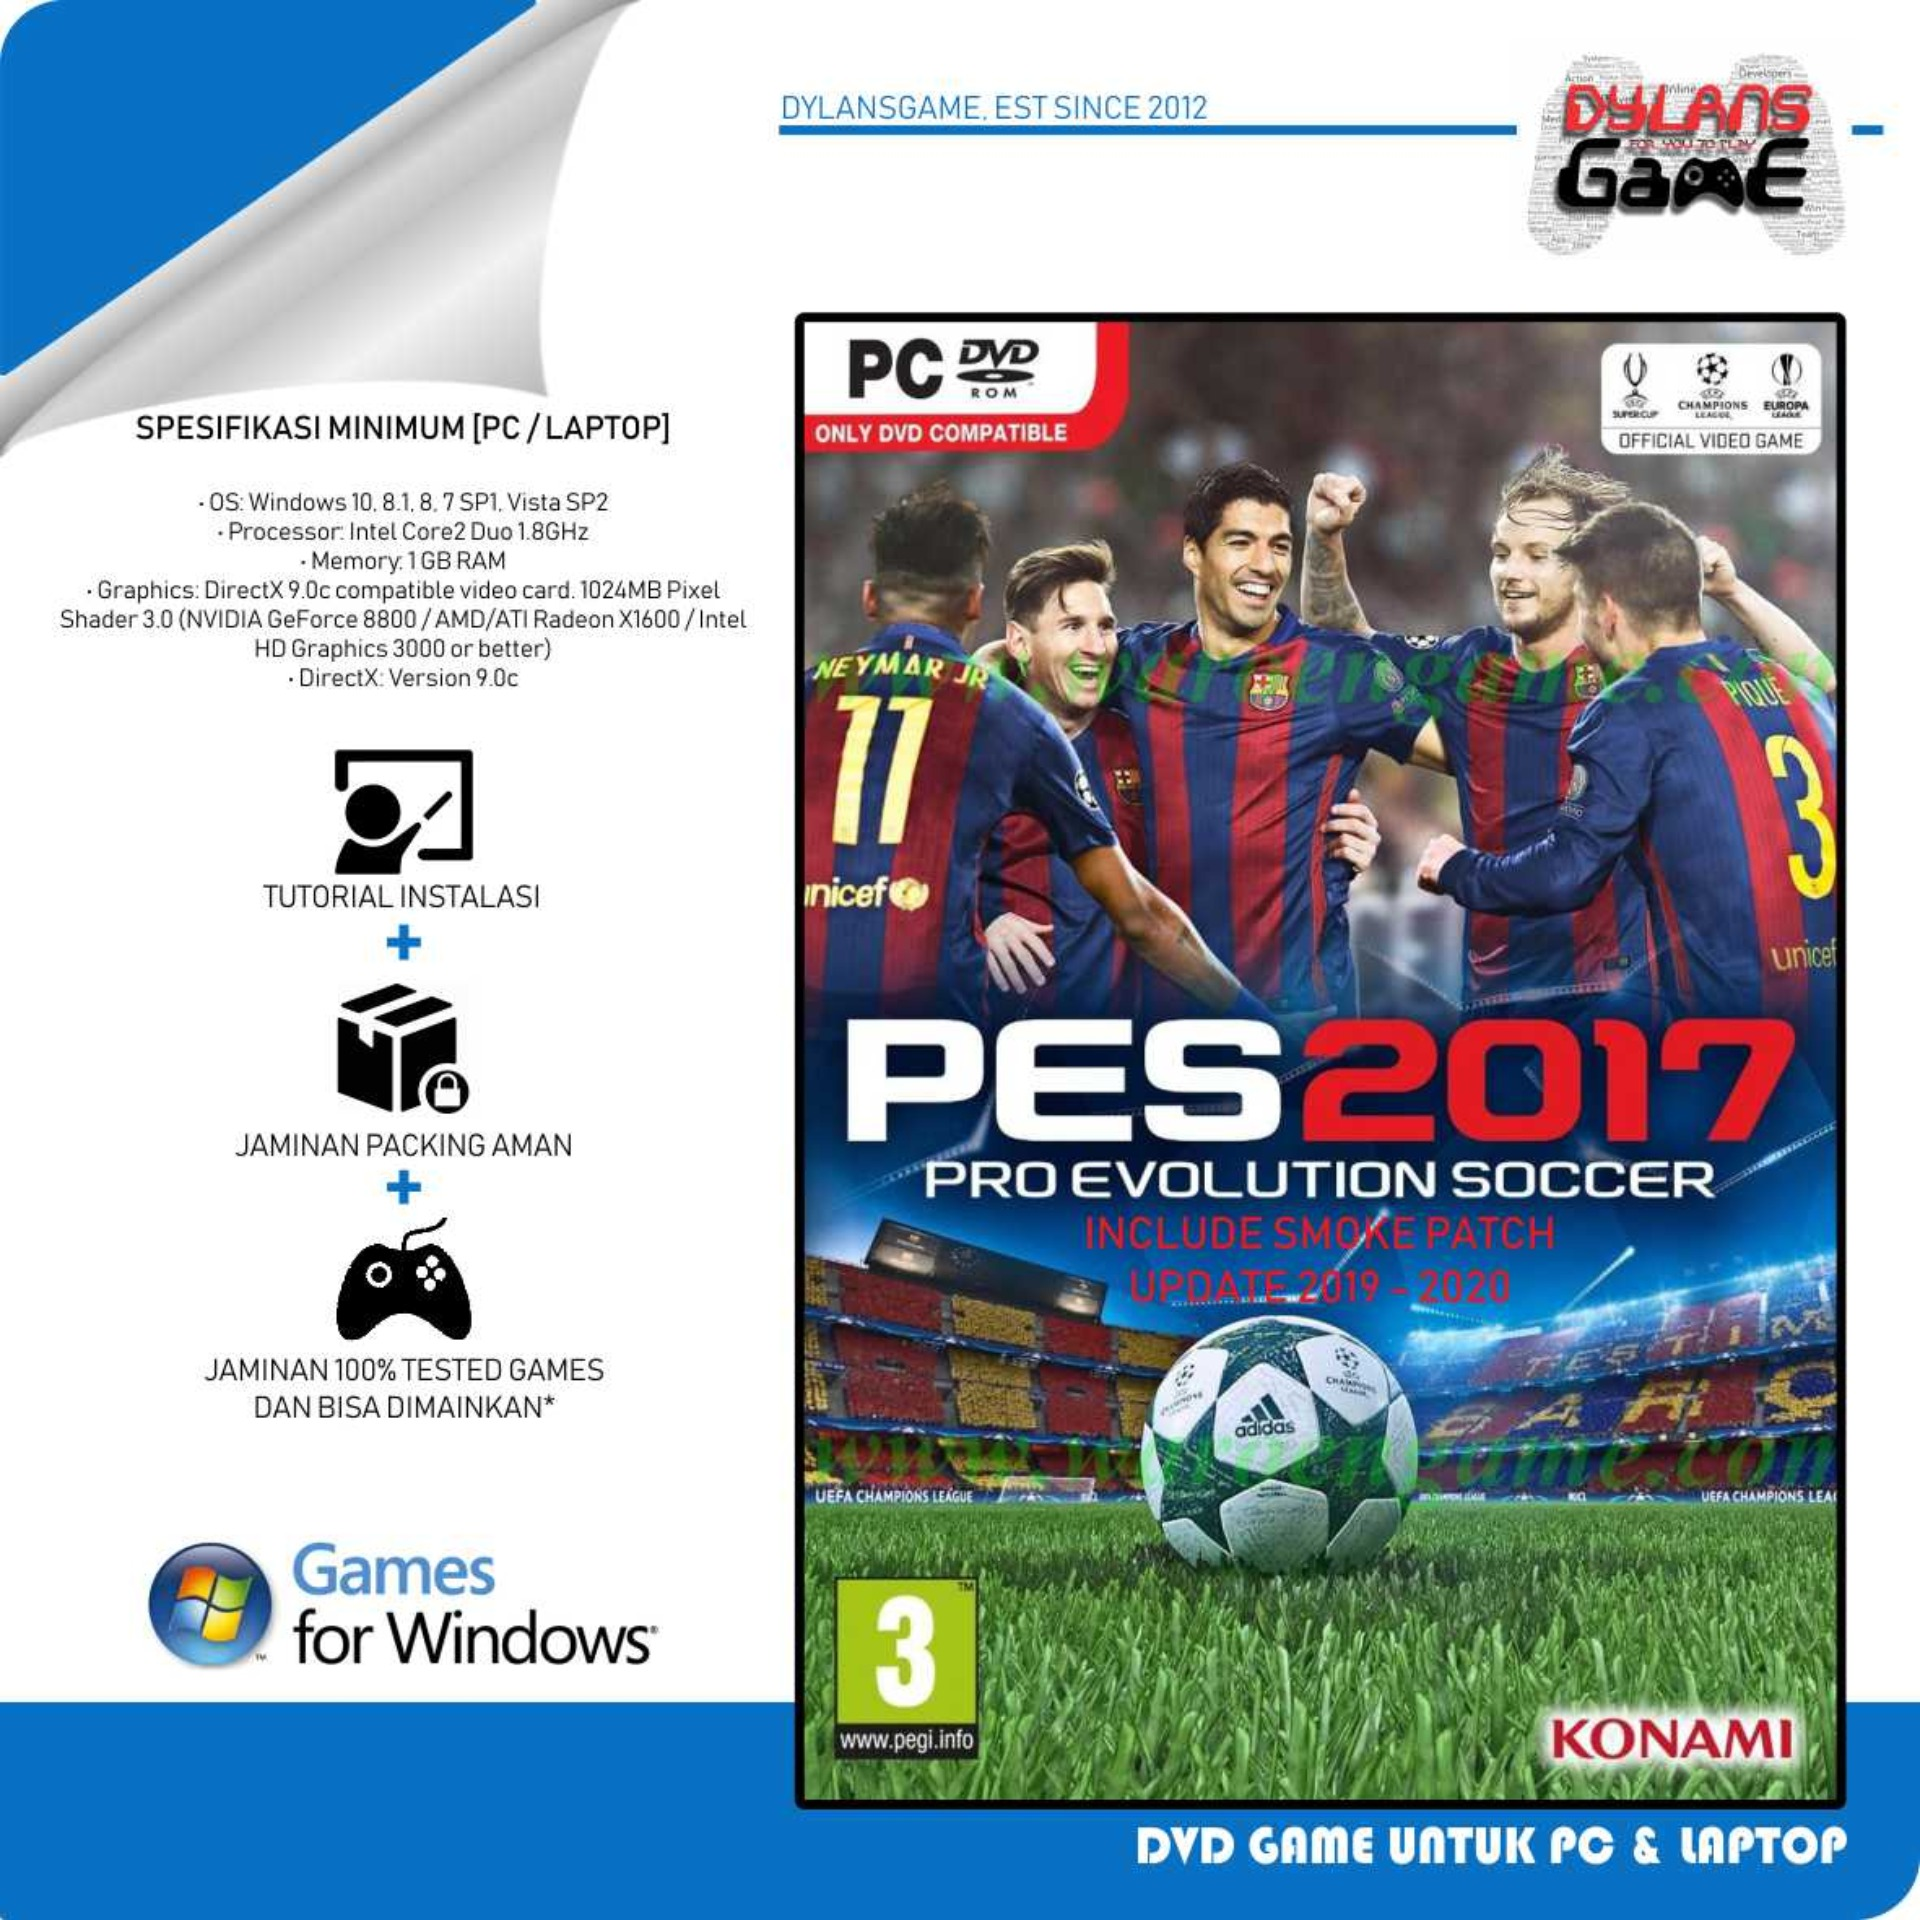 PRO EVOLUTION SOCCER 2017 - PES 17 + PATCH UPADATE 23 DEC 2019 PC GAME DVD GAME PC LAPTOP